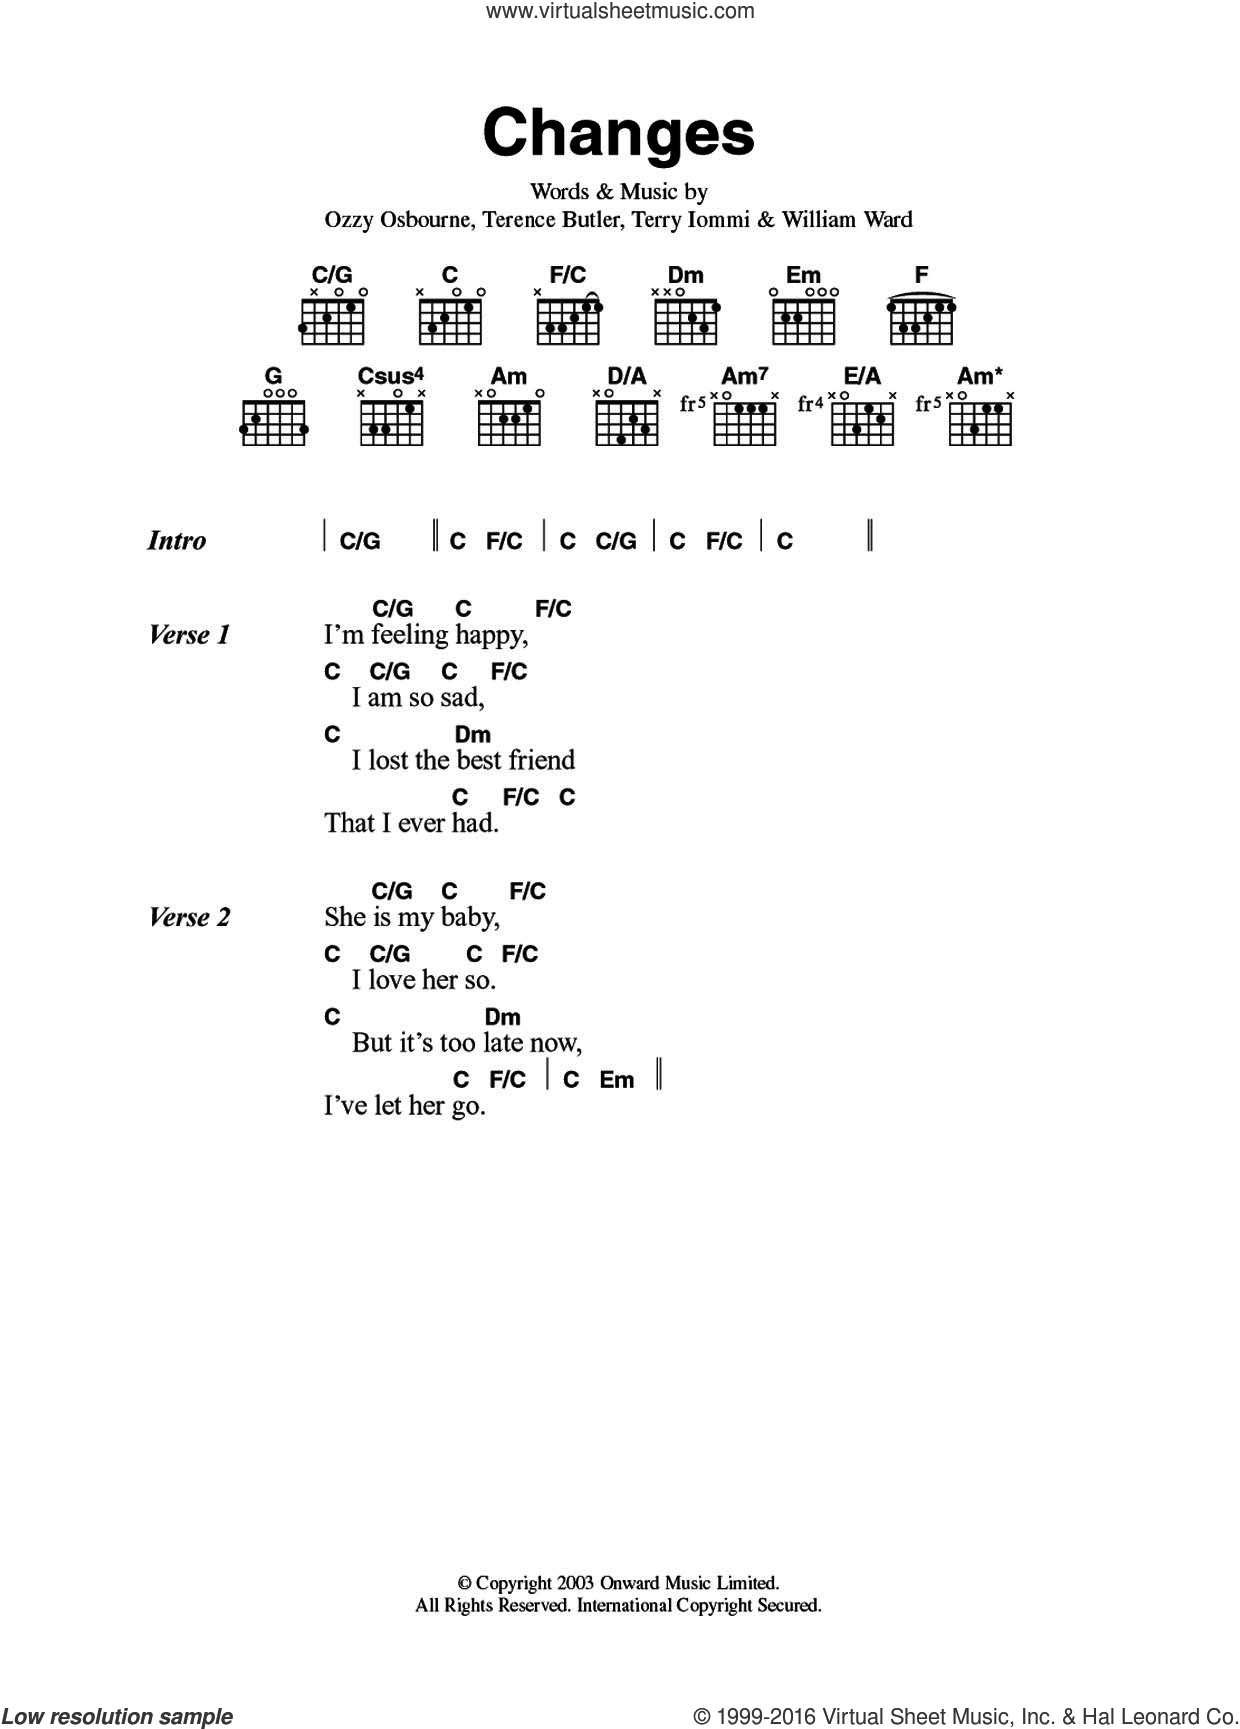 Osbourne Changes Sheet Music For Guitar Chords Pdf